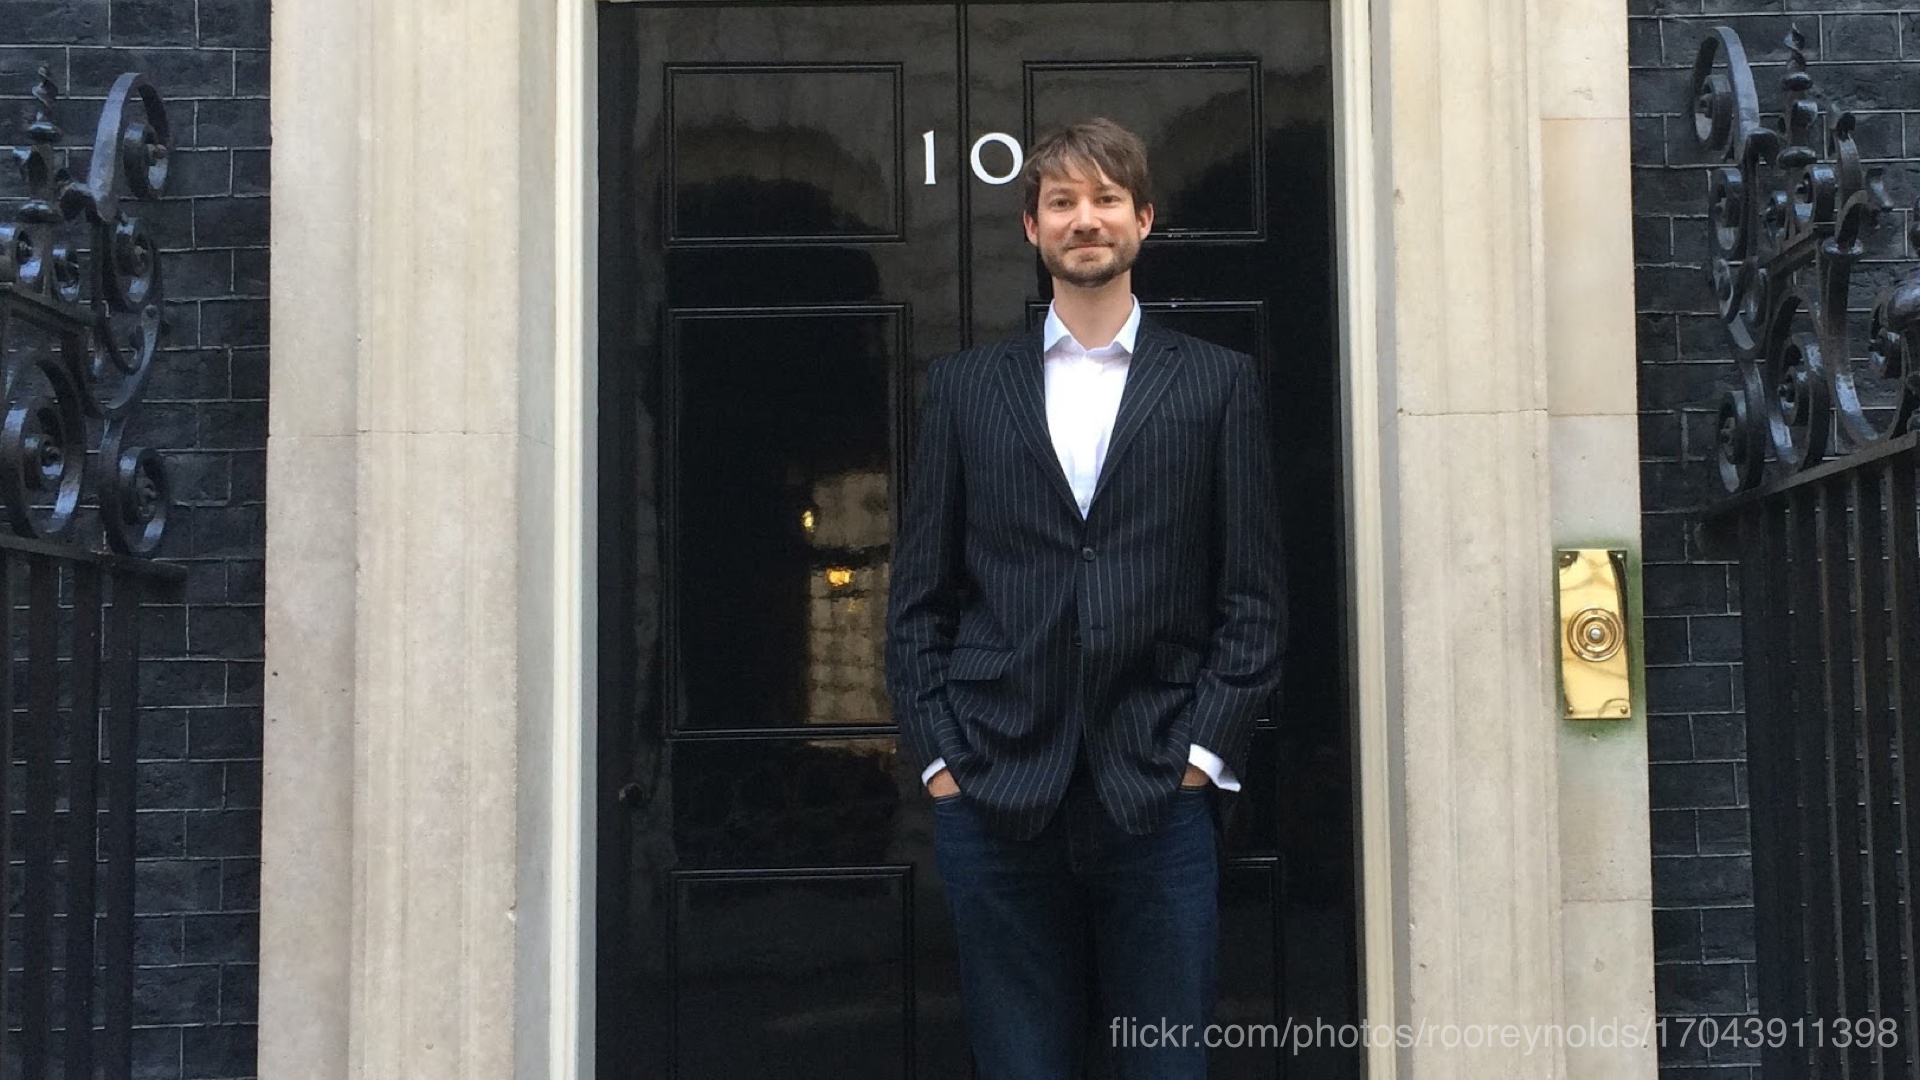 A photo of Roo standing outside Number 10 Downing Street